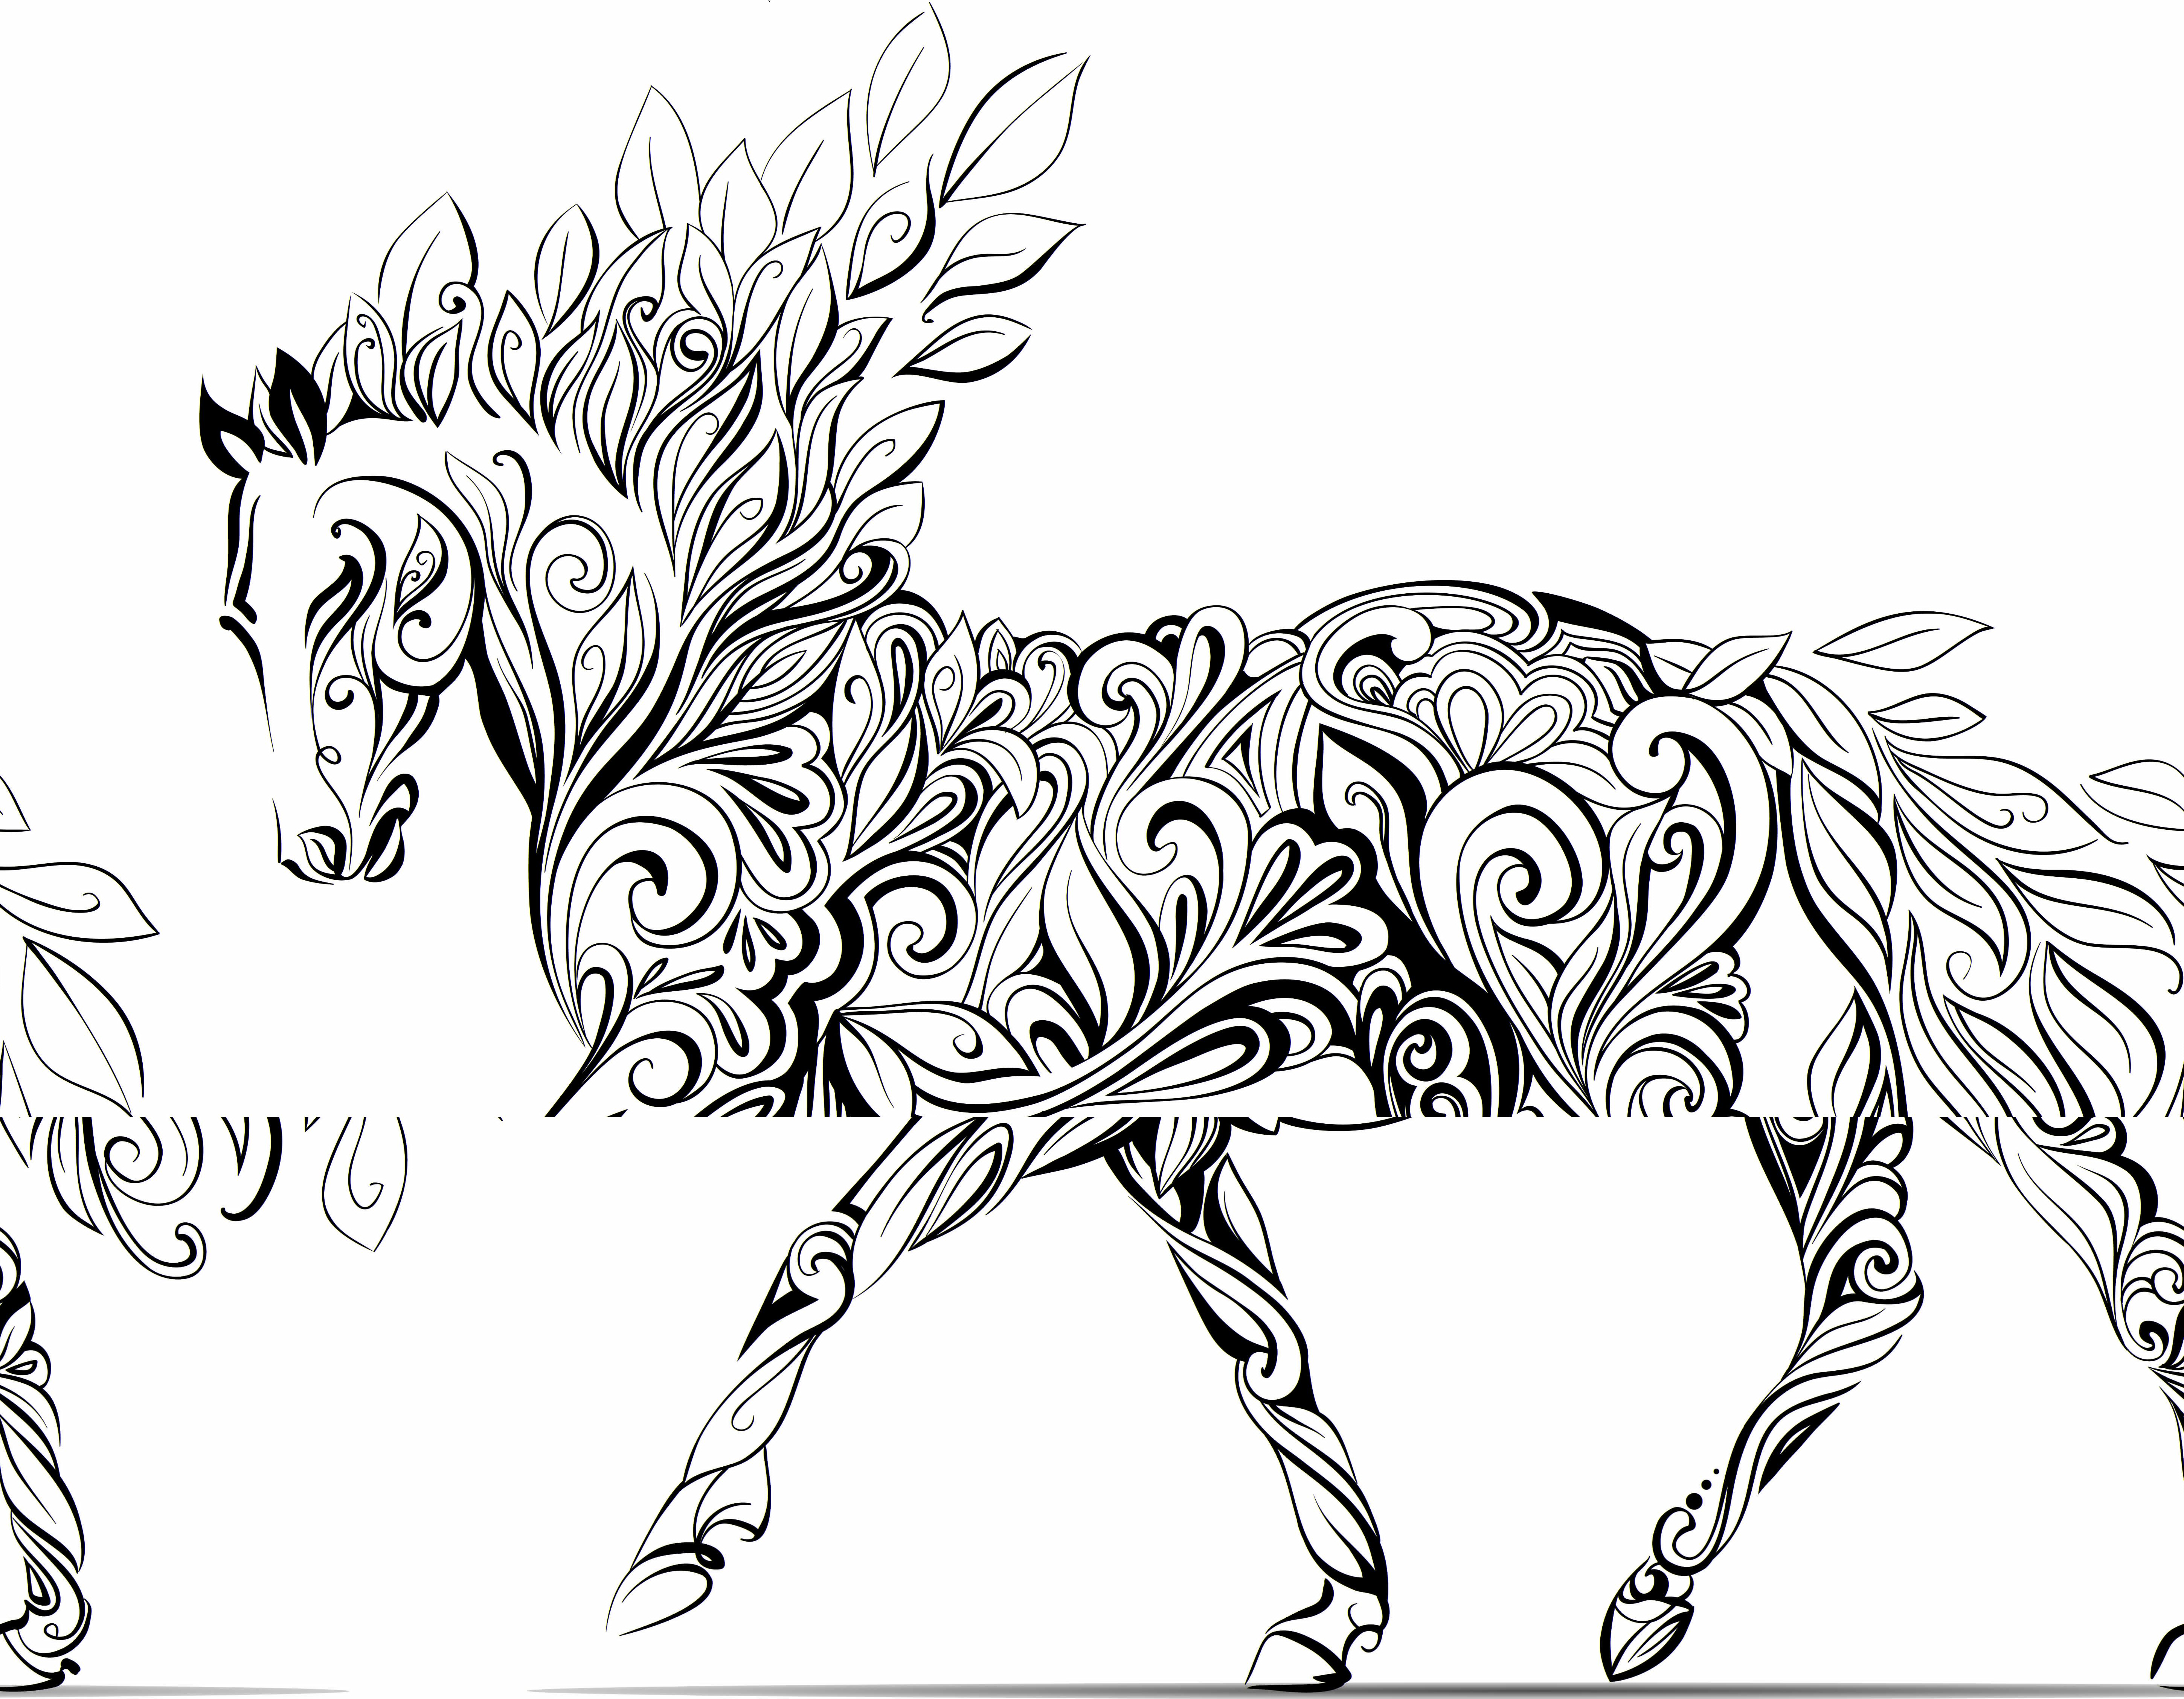 pony coloring pages for grownups - photo#17